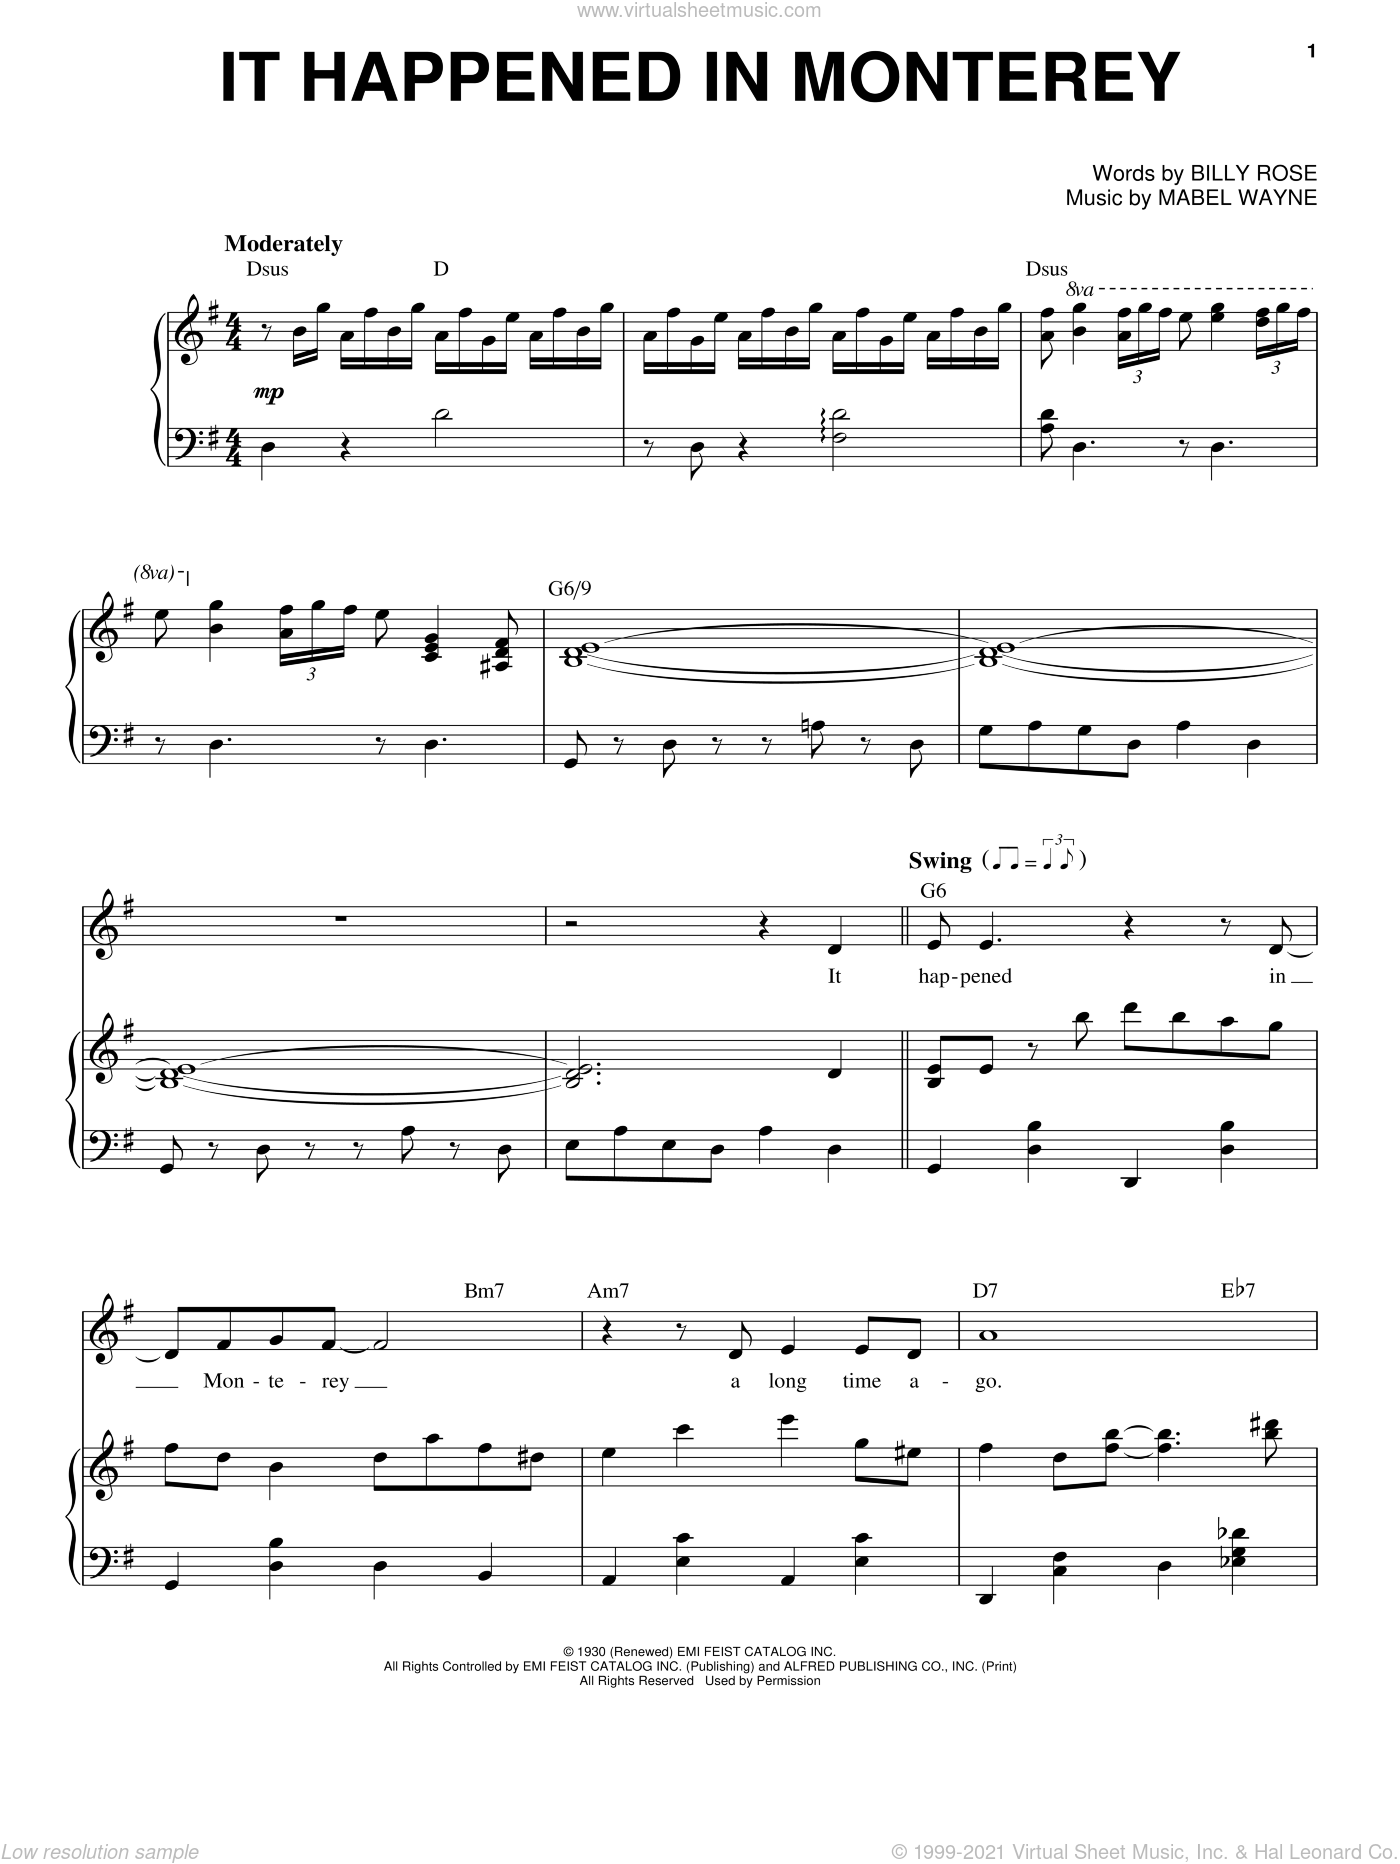 It Happened In Monterey sheet music for voice and piano by Frank Sinatra, Billy Rose and Mabel Wayne, intermediate skill level